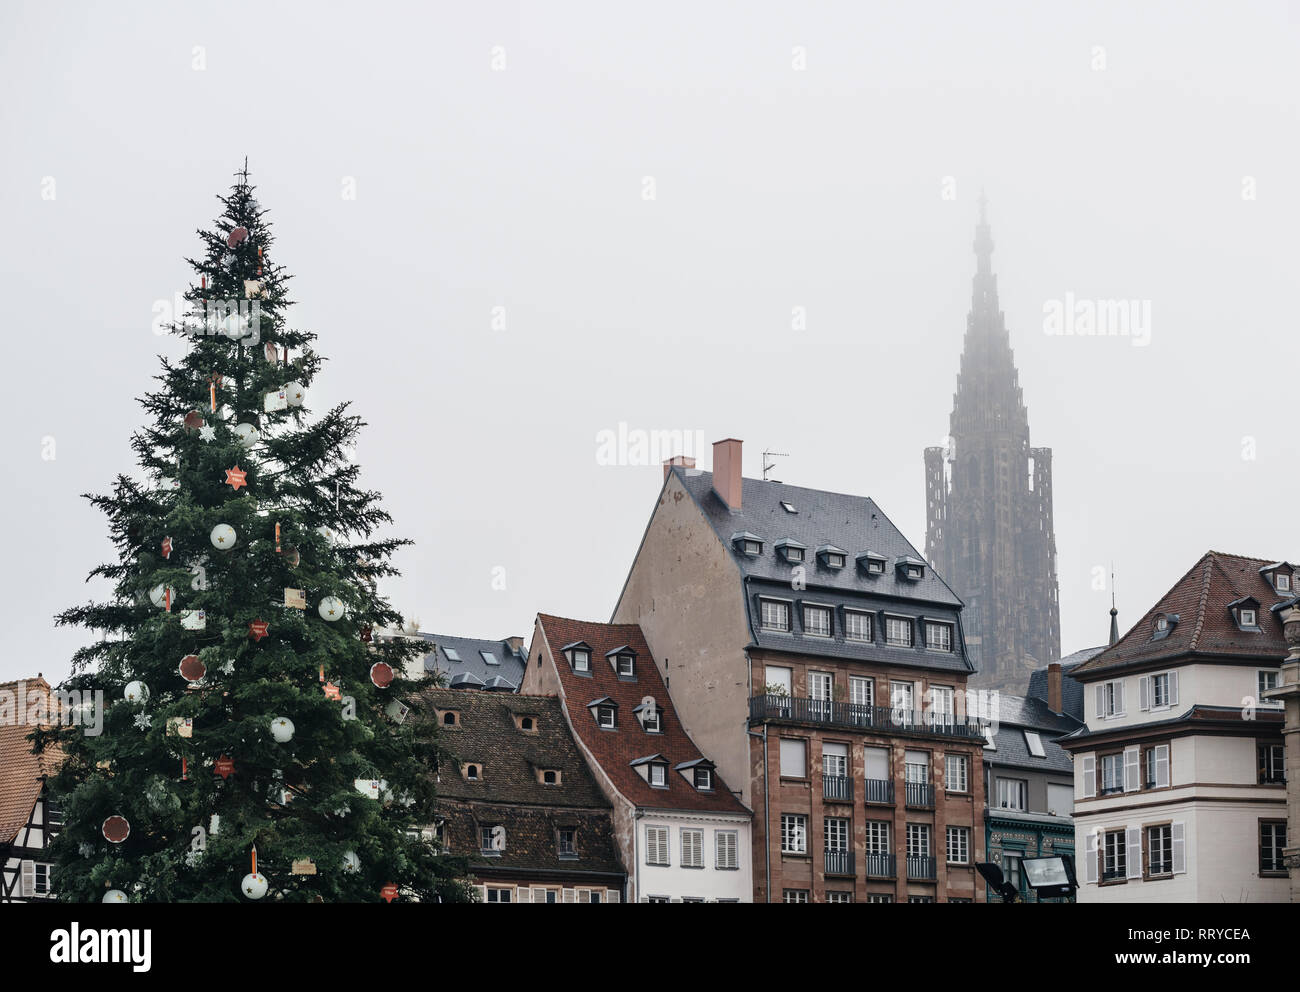 Strasbourg Christmas Market and Notre-Dame Cathedral in mist after terrorist attack held on December 11, 2018 - Stock Image